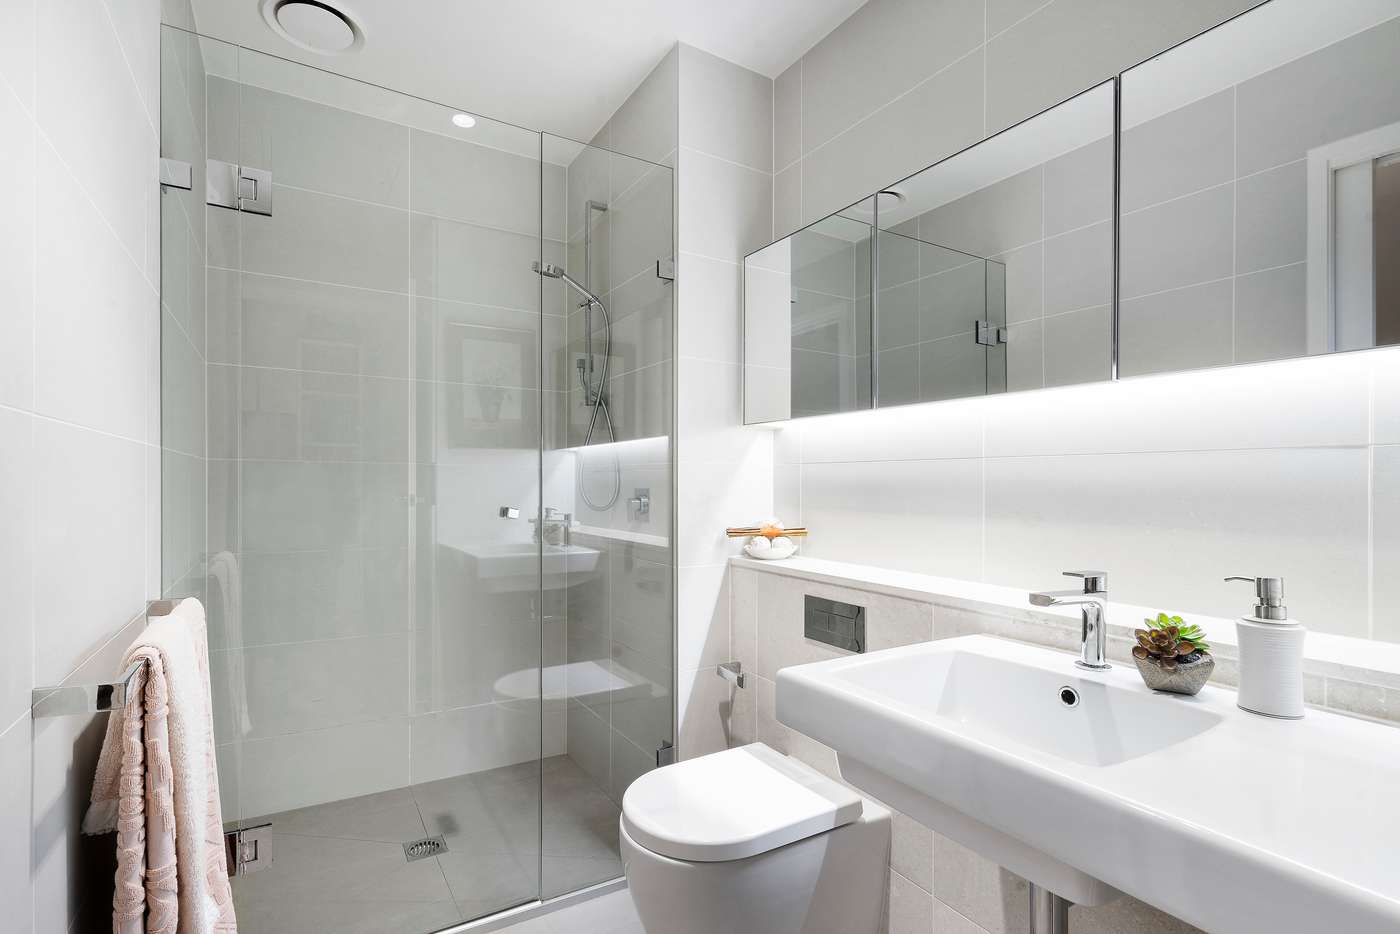 Fifth view of Homely apartment listing, 611/199 William Street, Melbourne VIC 3000